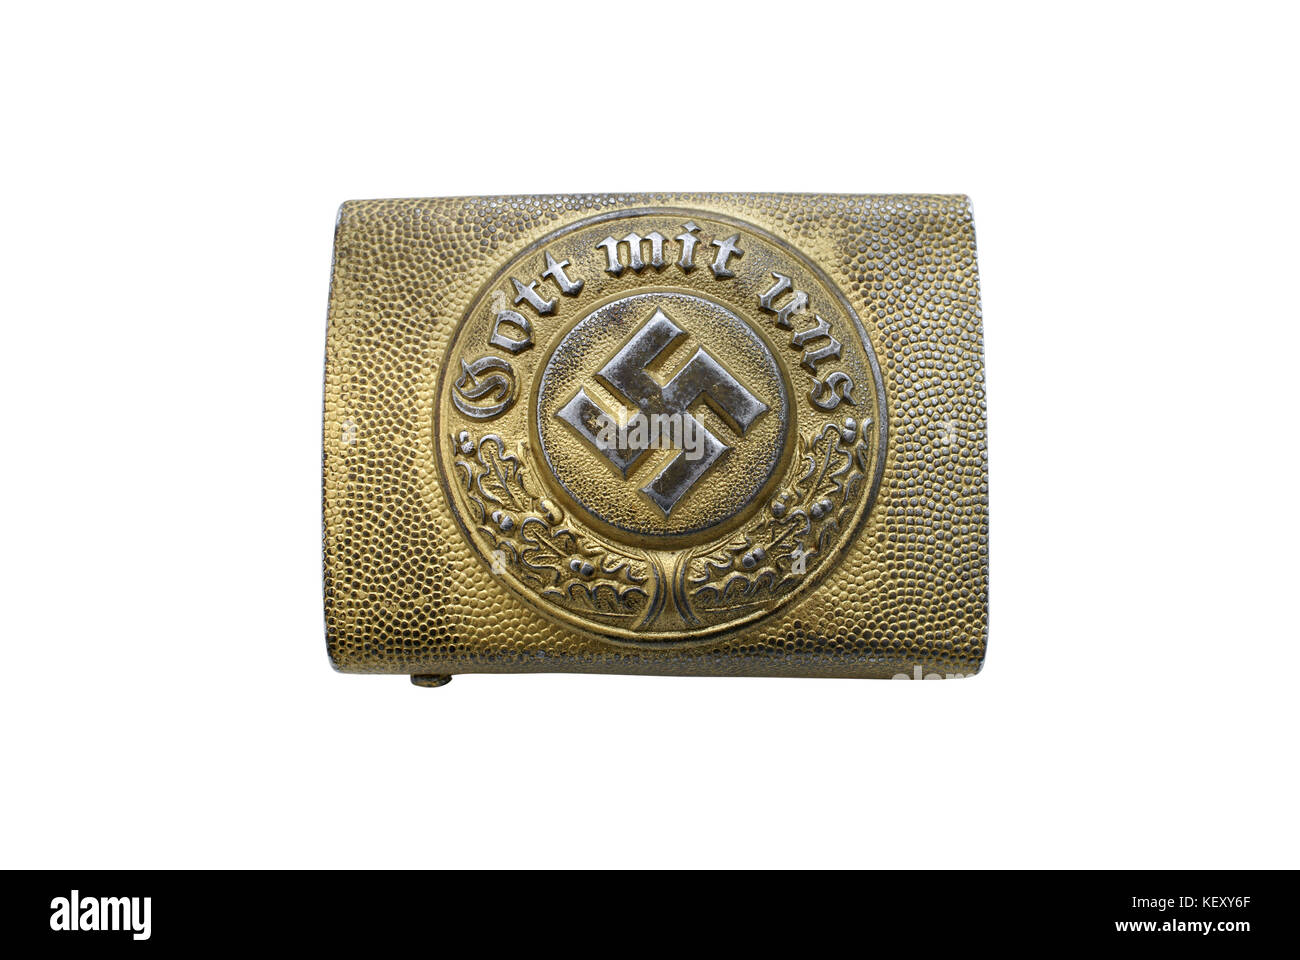 Germany at the Second World War. Only for historical purposes! Buckle of German Navy police (rank and file). Steel - Stock Image